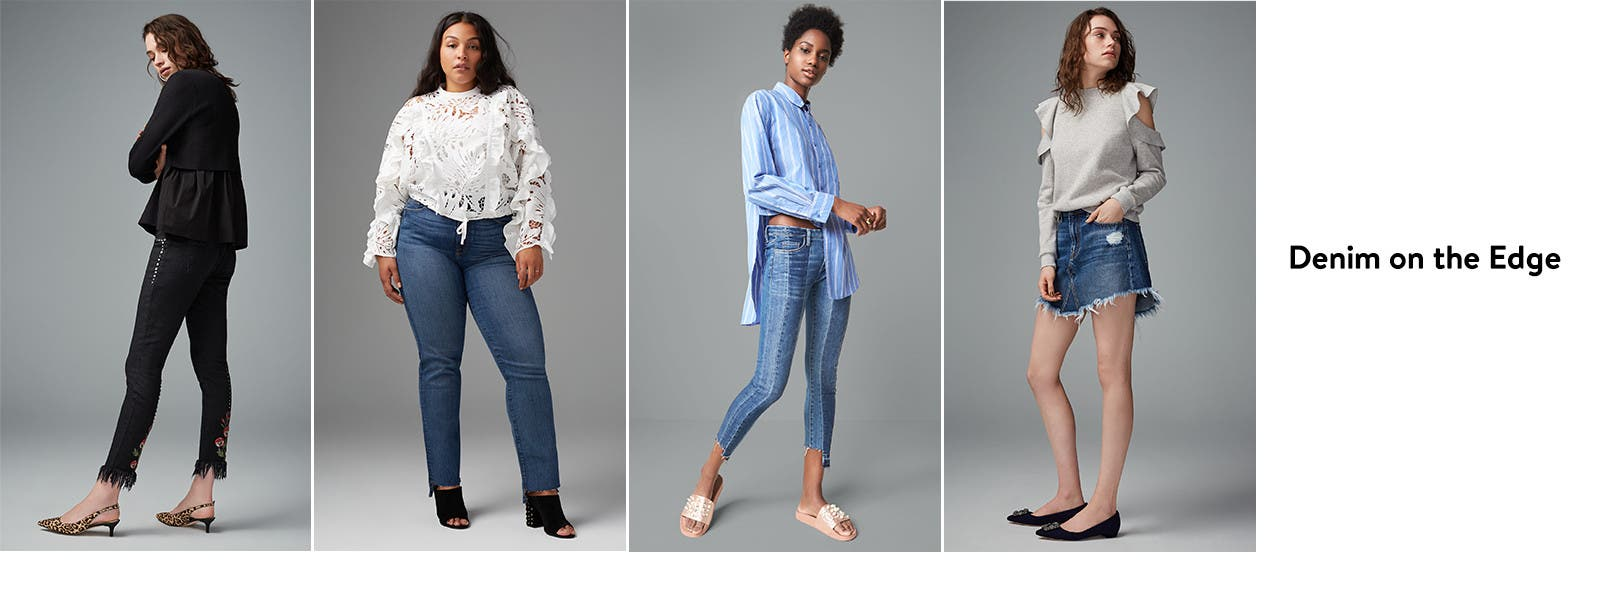 Denim on the edge. Jeans and denim skirts for women.